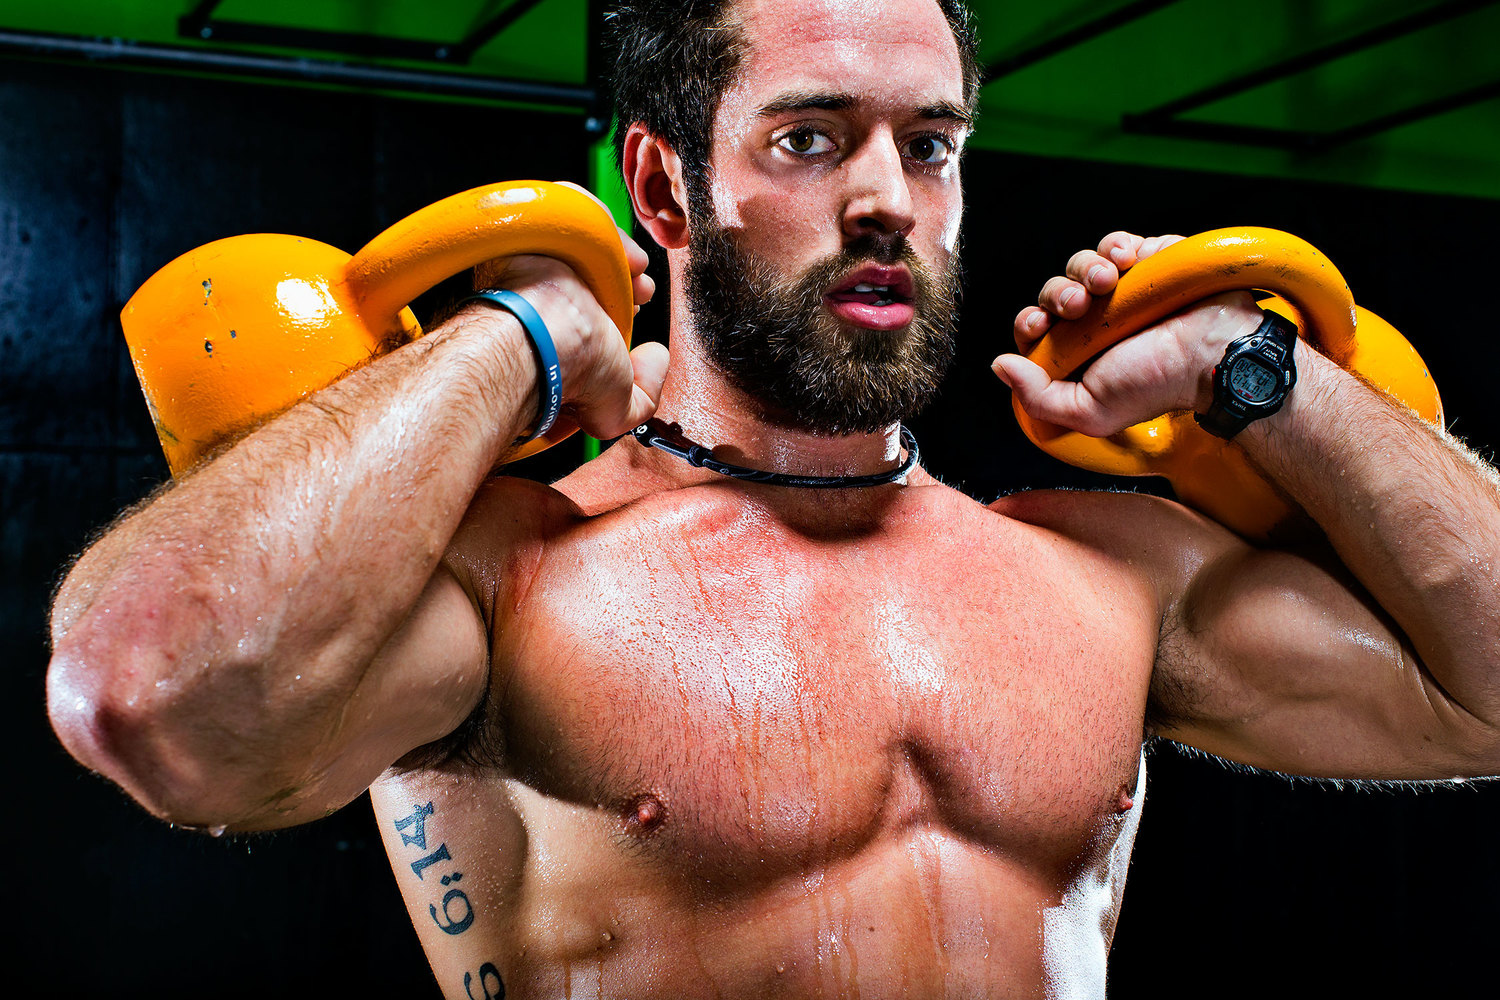 rich froning john loomis photography